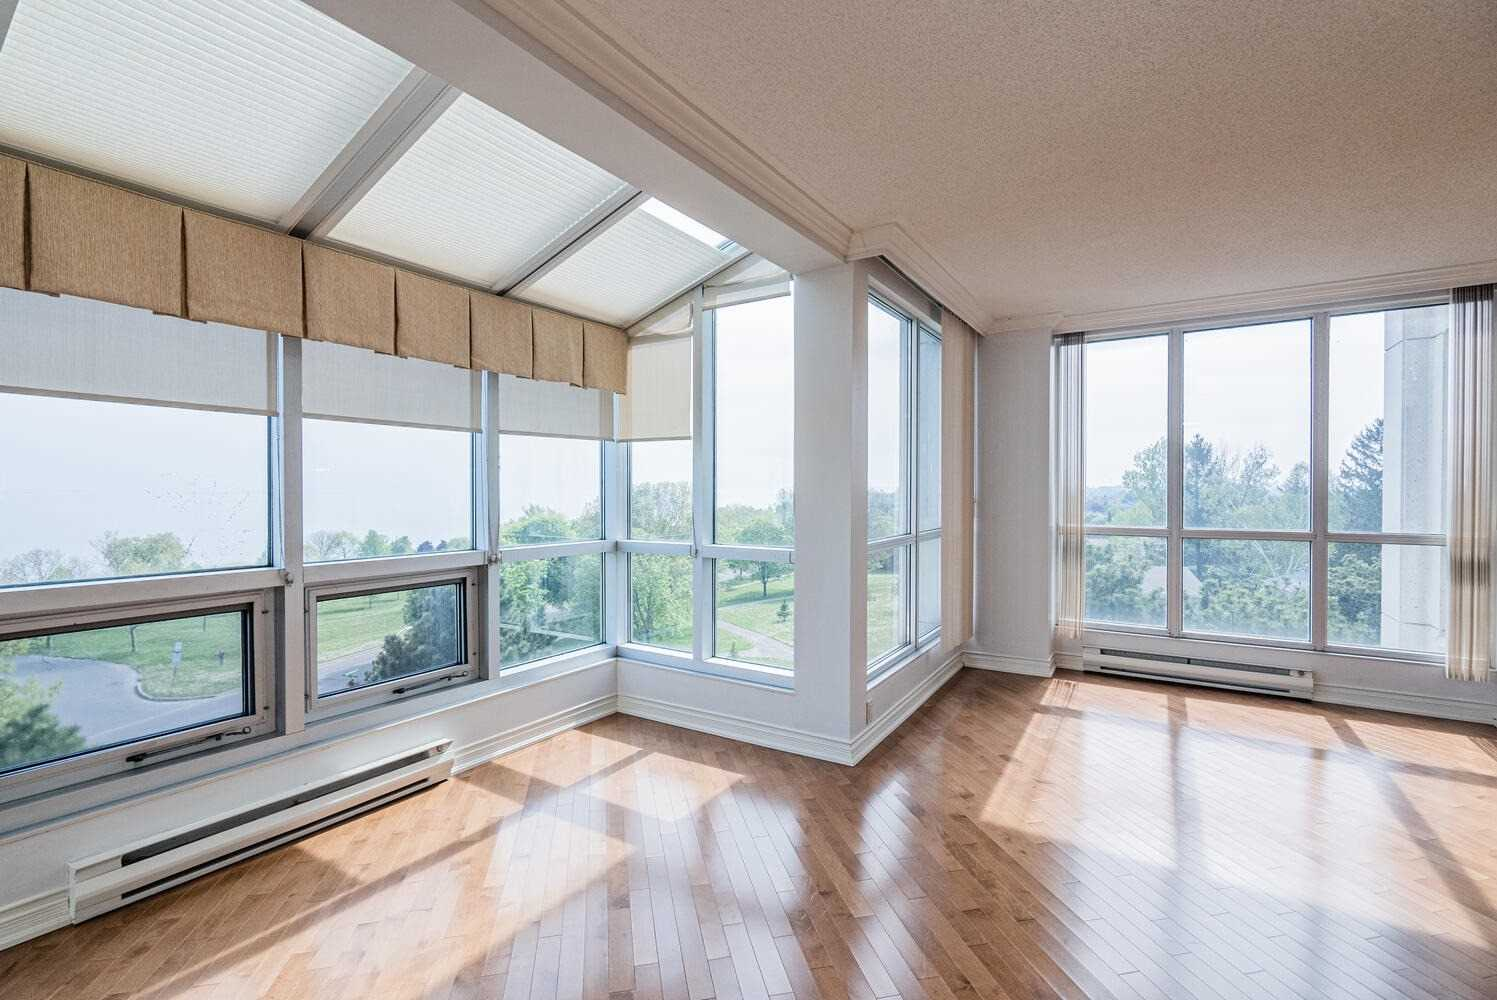 Image 35 of 38 showing inside of 2 Bedroom Condo Apt Apartment for Sale at 70 Cumberland Lane Unit# 503, Ajax L1S7K4